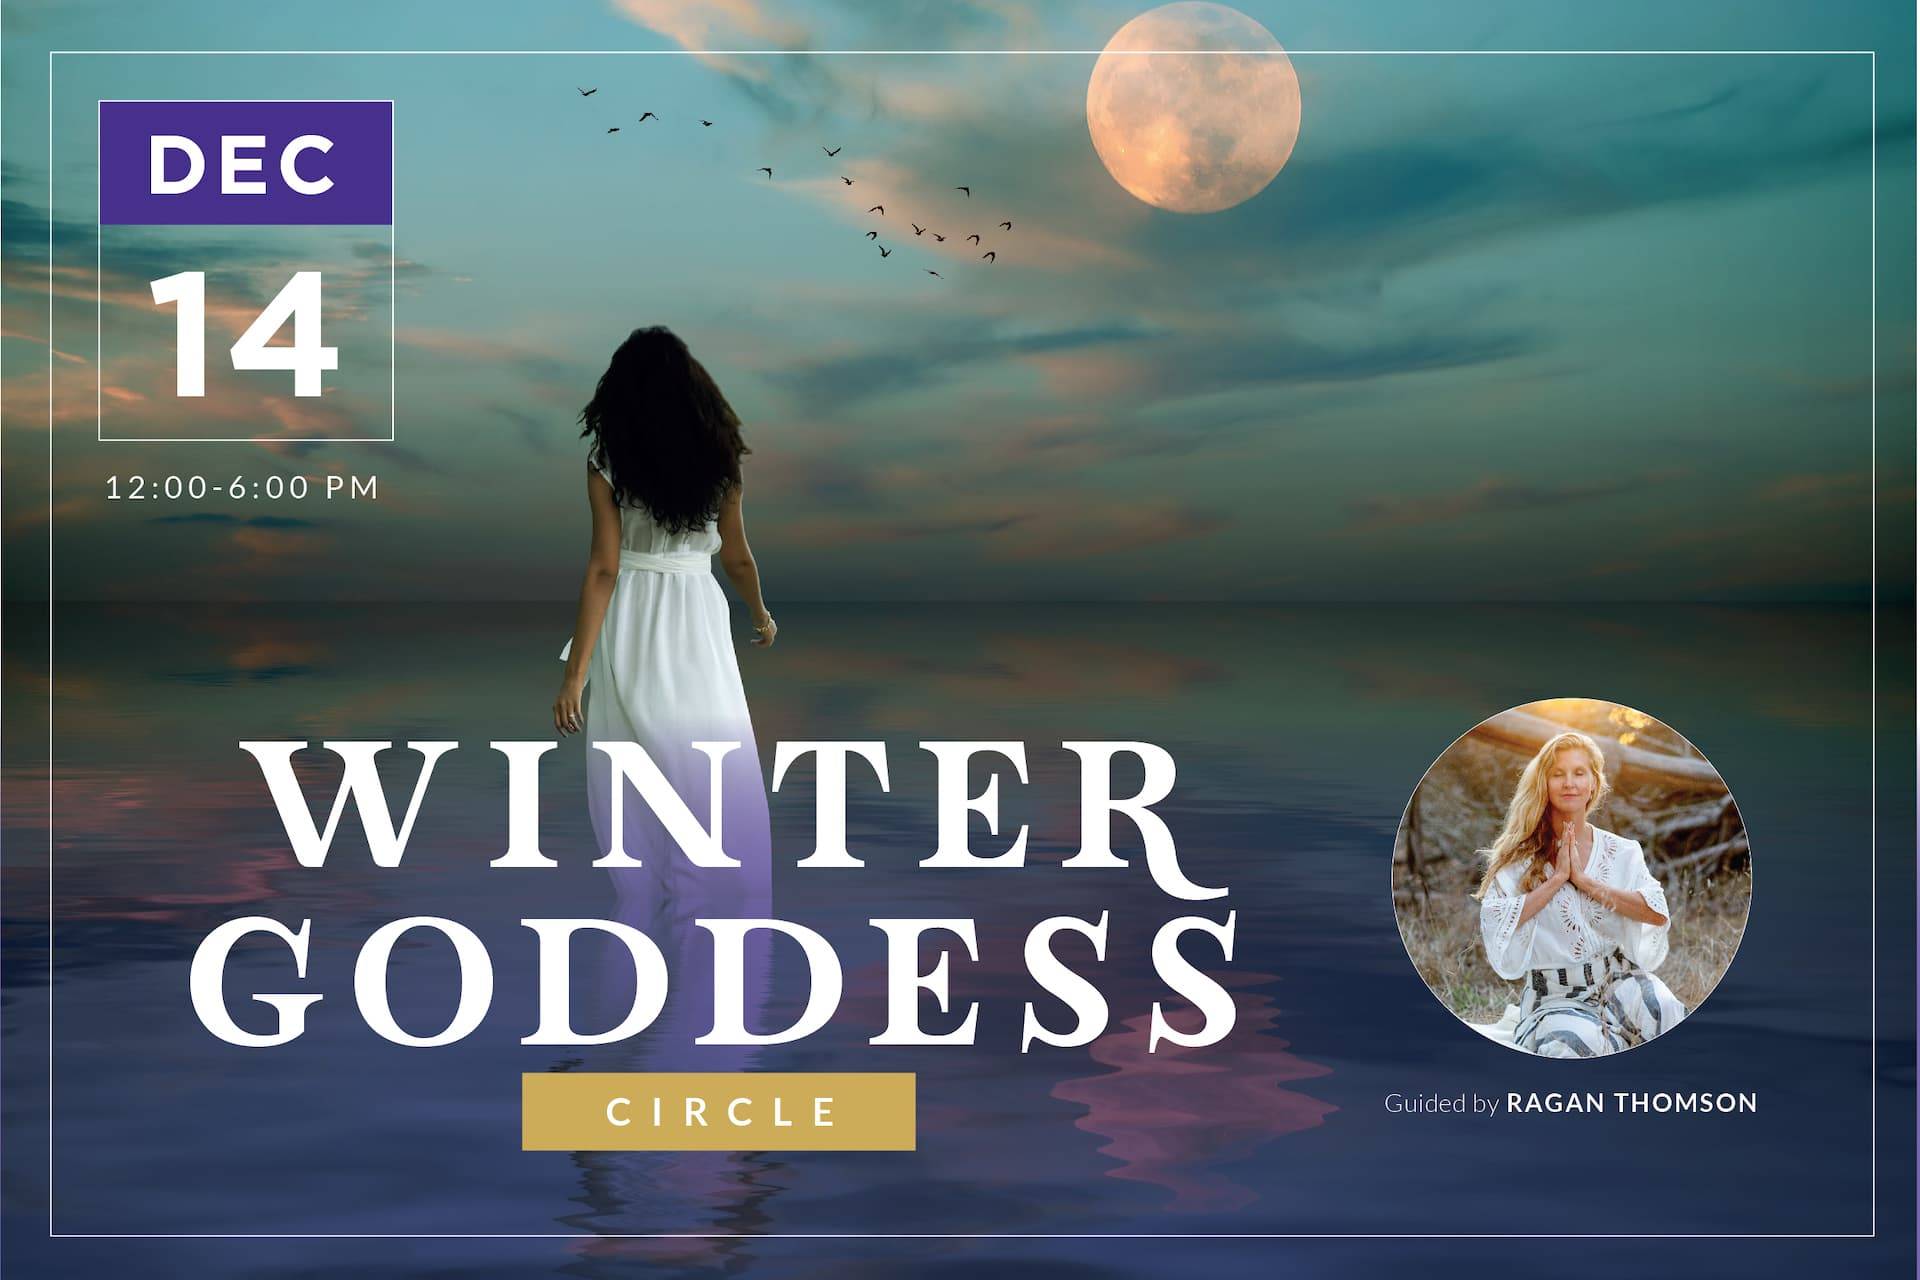 Winter Goddess Circle